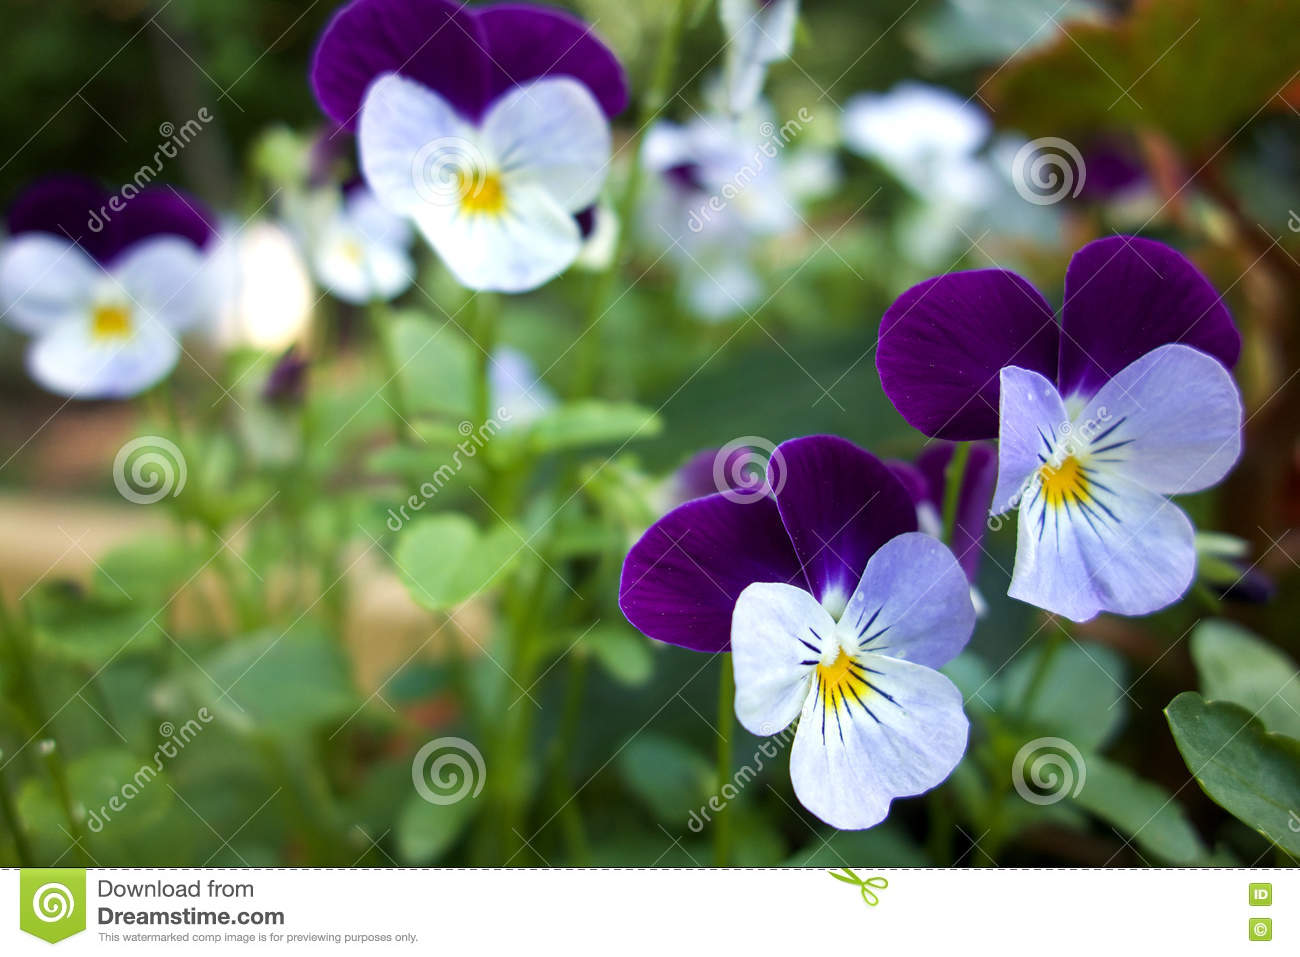 Purple and white pansy flowers stock image image of macro petal download purple and white pansy flowers stock image image of macro petal 73295945 mightylinksfo